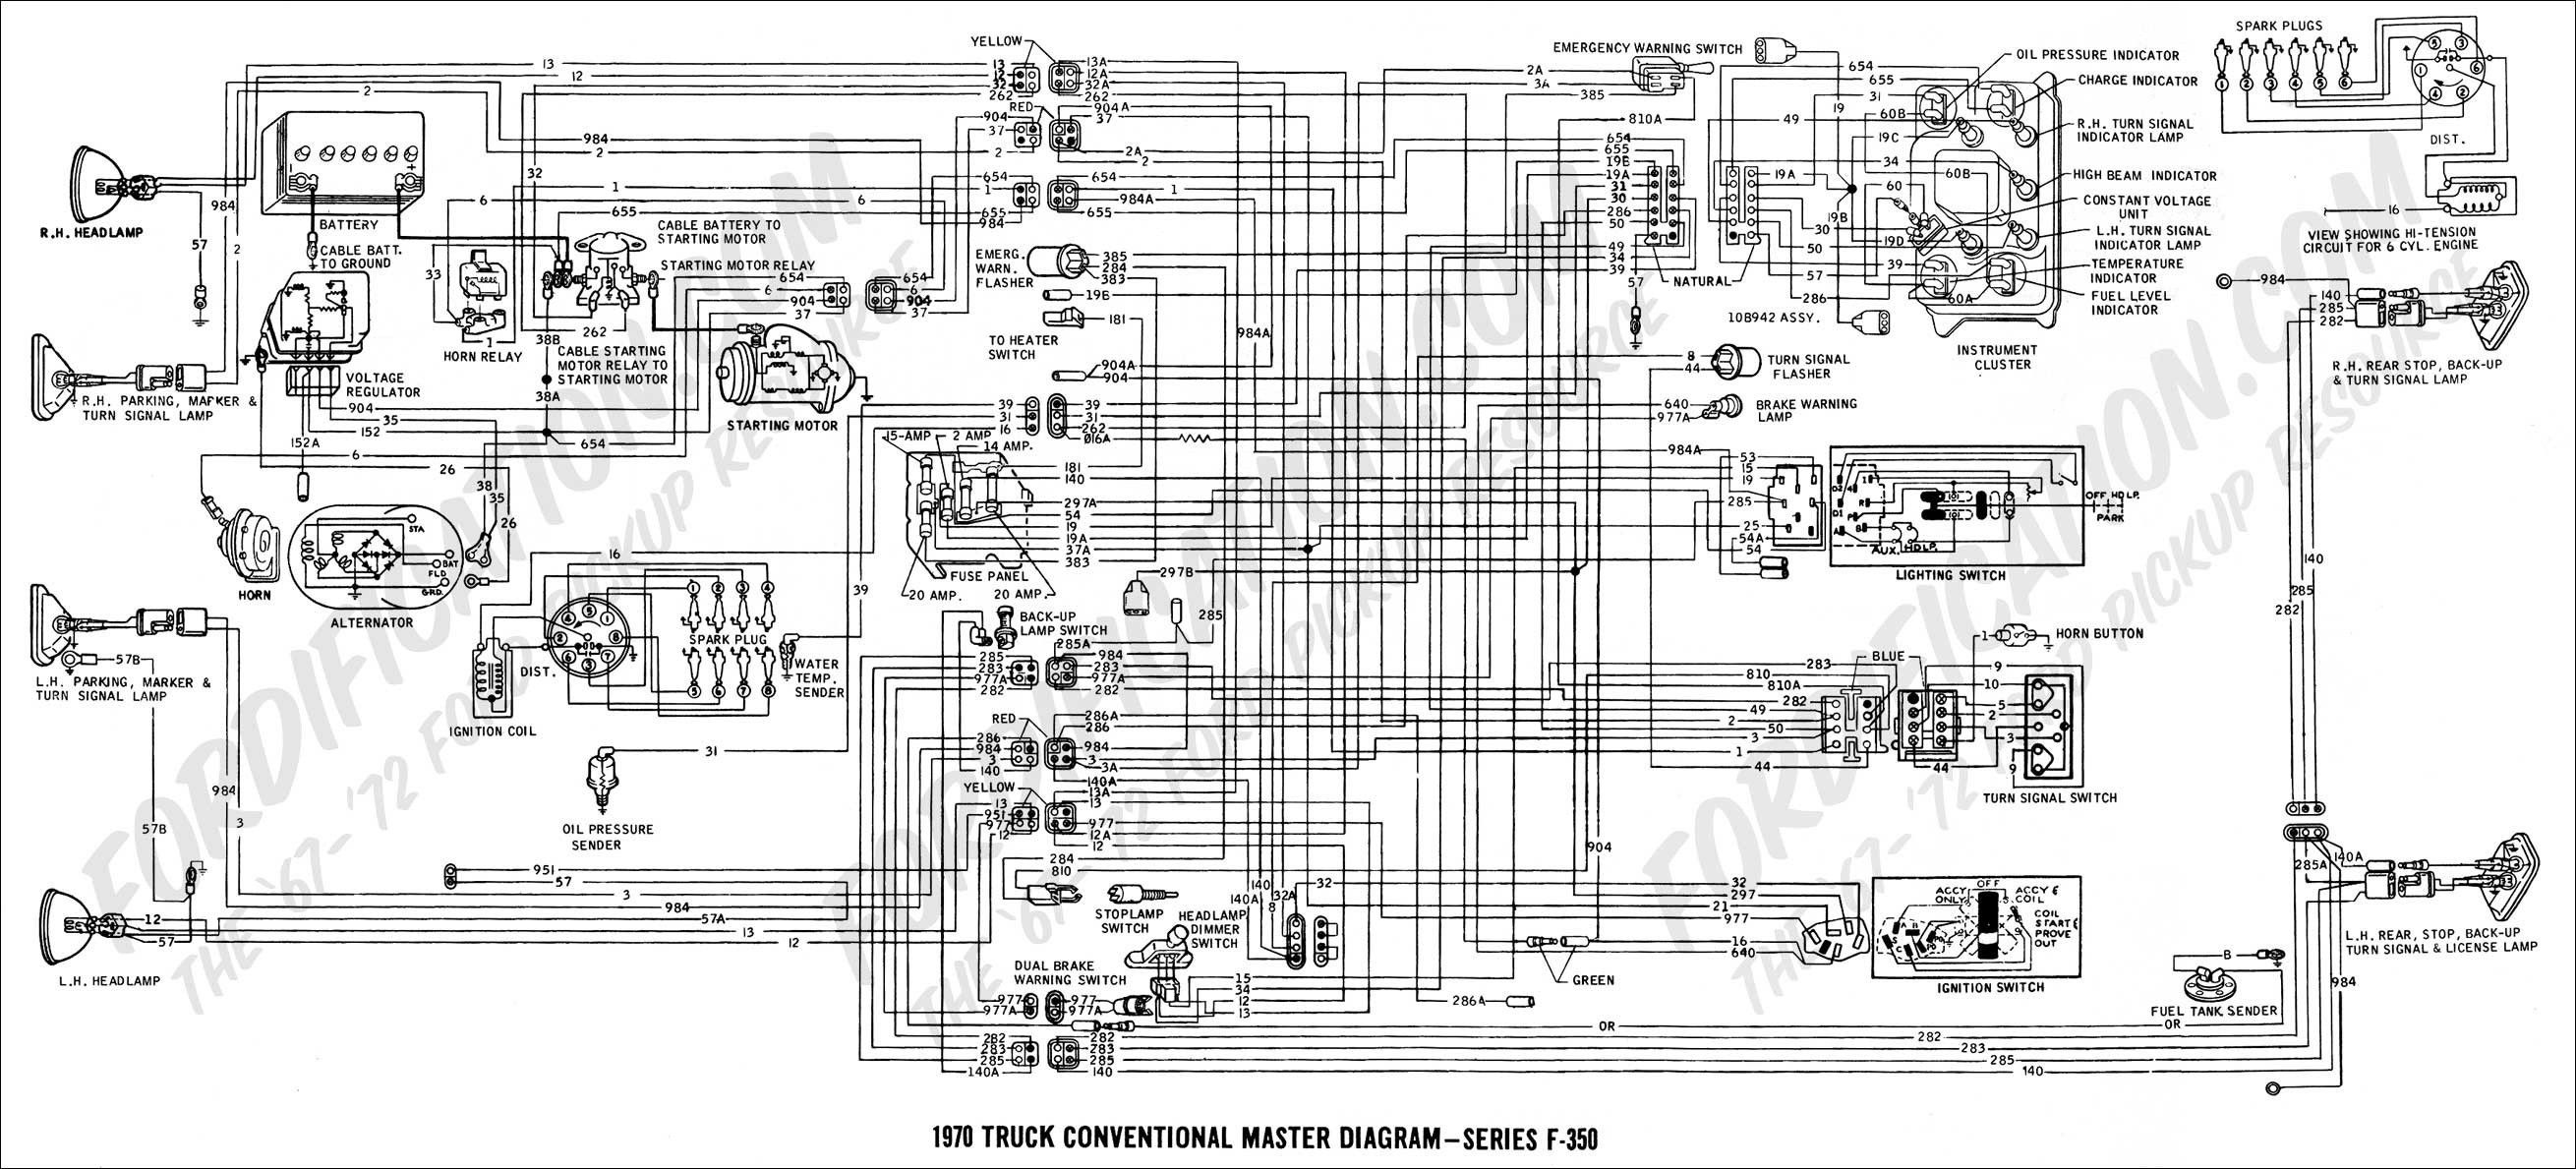 small resolution of image result for 2006 6 0 powerstroke engine diagram